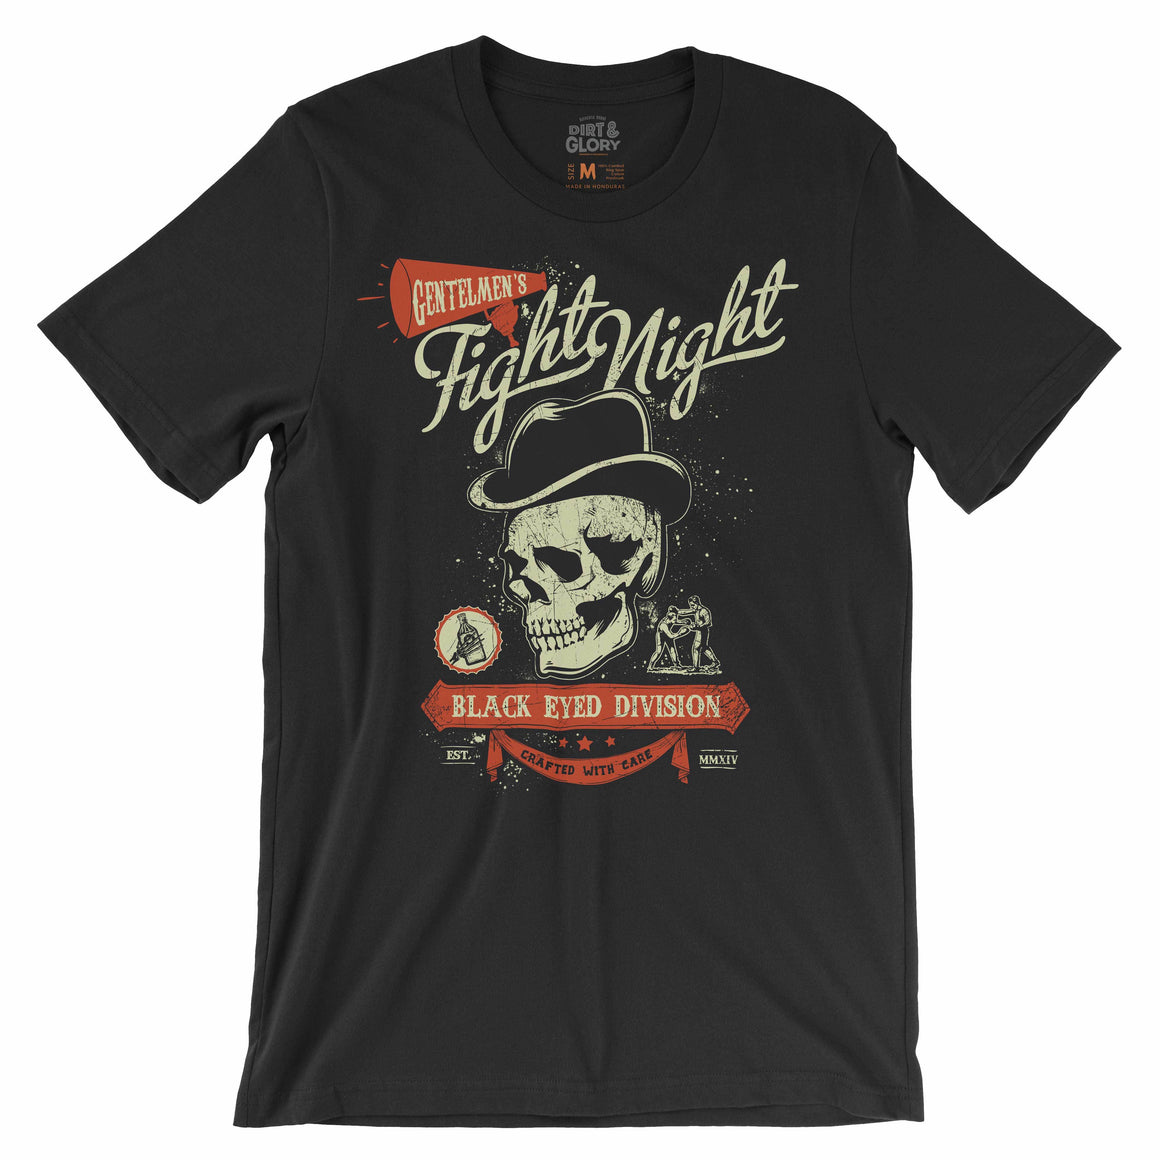 Fight Night - Men's Tee T-shirt by DIRT & GLORY